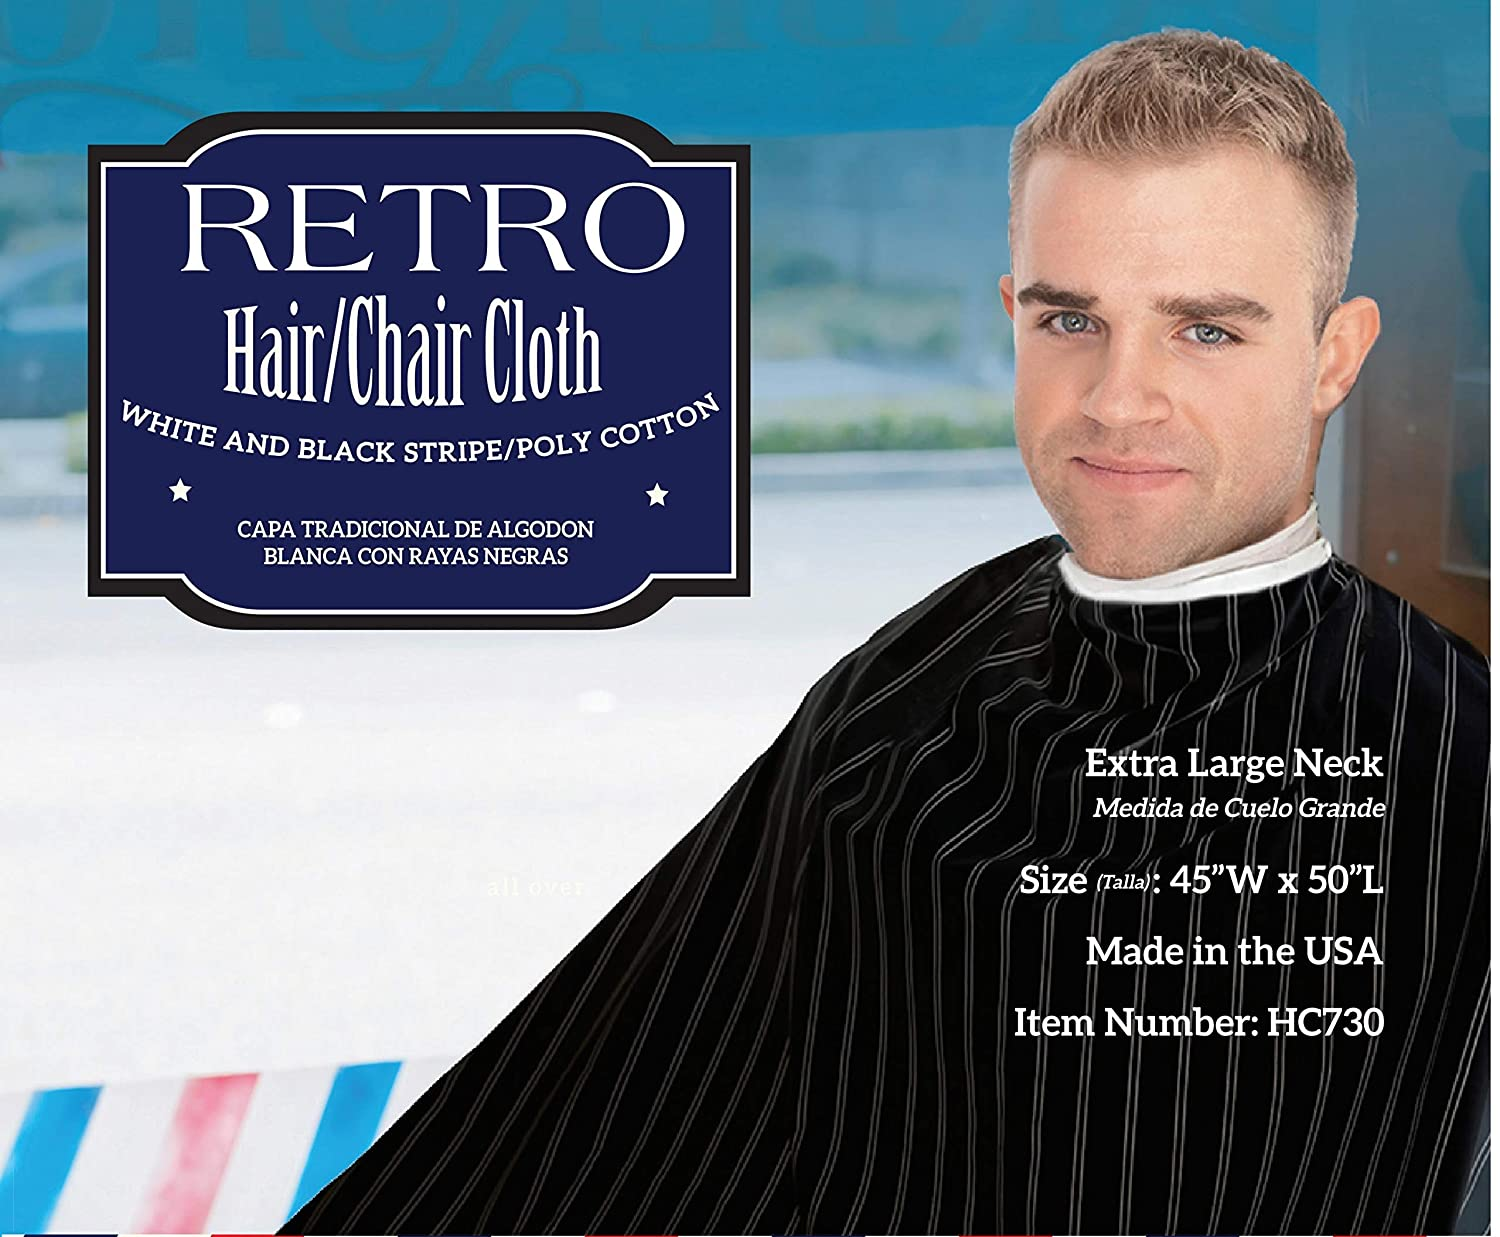 e04d1574d6496f Amazon.com : Old Fashioned Barber Cape Cloth : Hair Styling Product  Accessories : Beauty